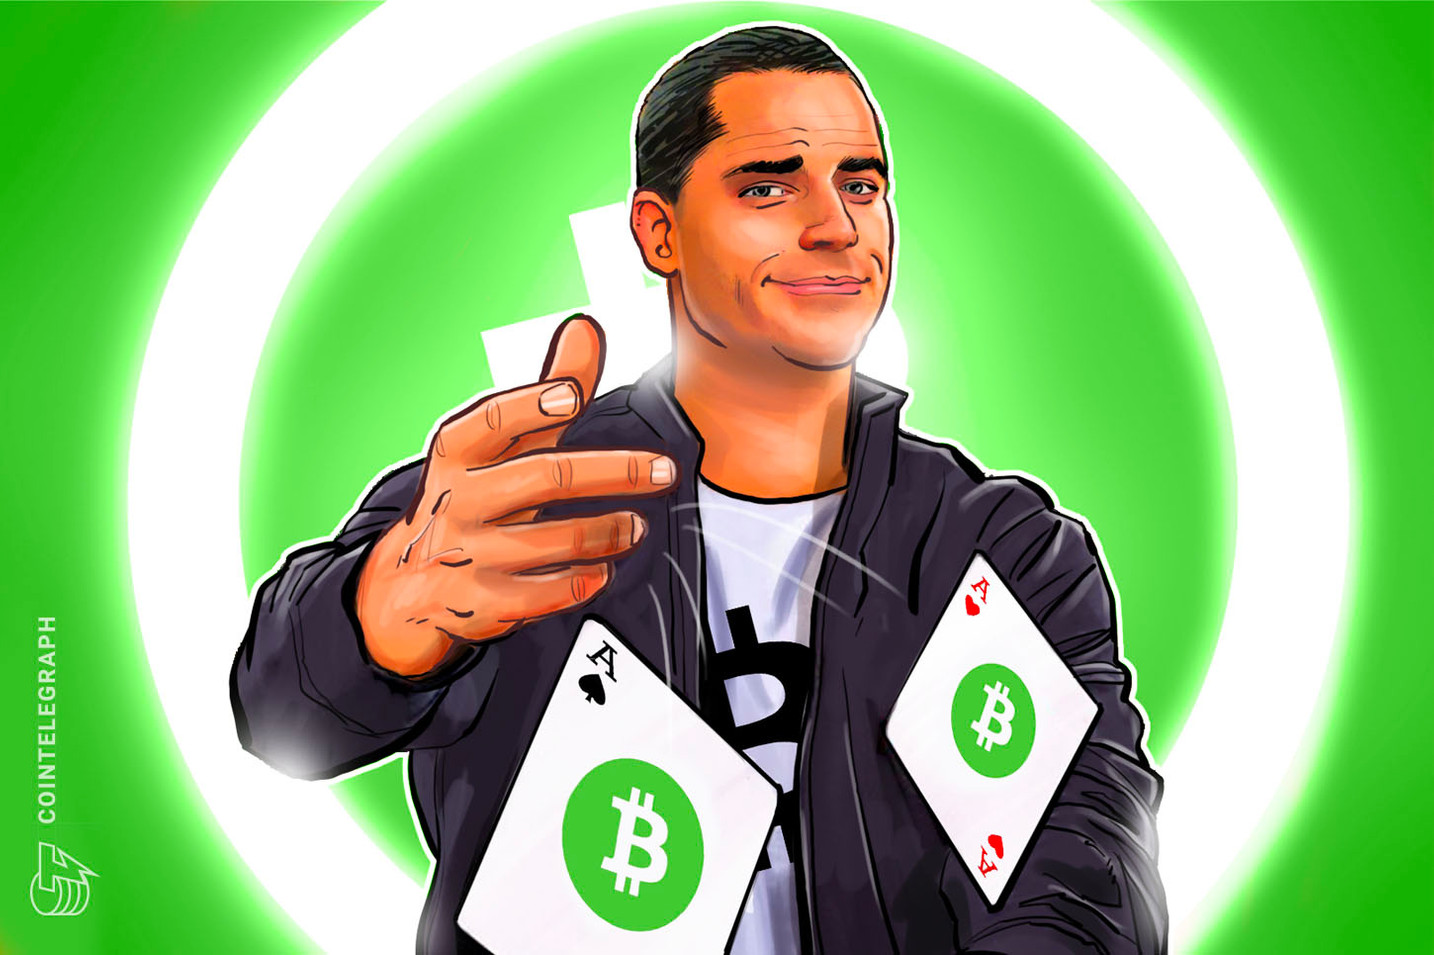 Roger Ver Apparently Thinks Bitcoin Cash Value Could Increase 100,000%